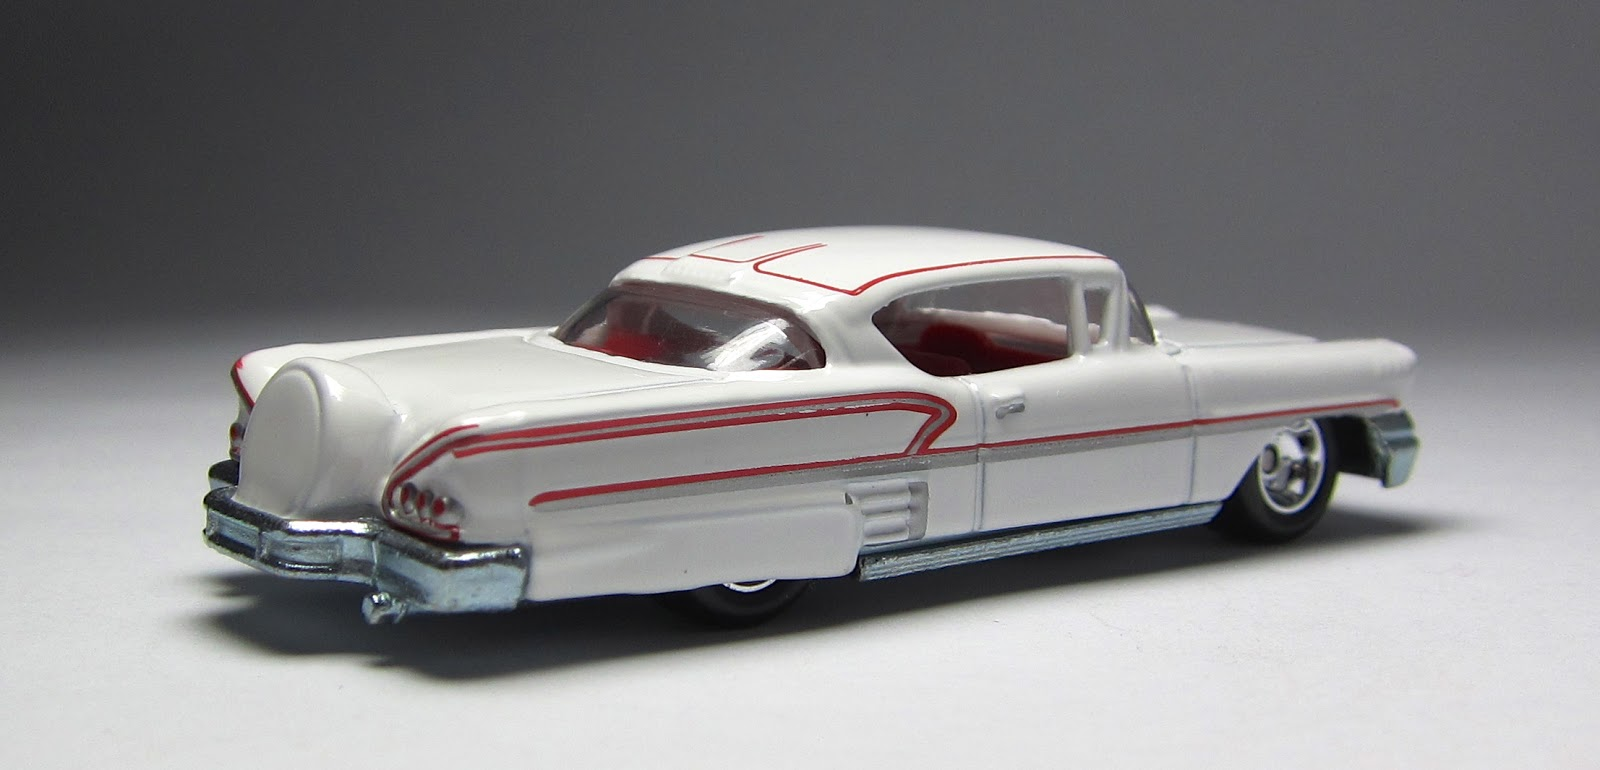 Filme Do Hot Wheels intended for first look: hot wheels retro entertainment '48 ford & '58 impala